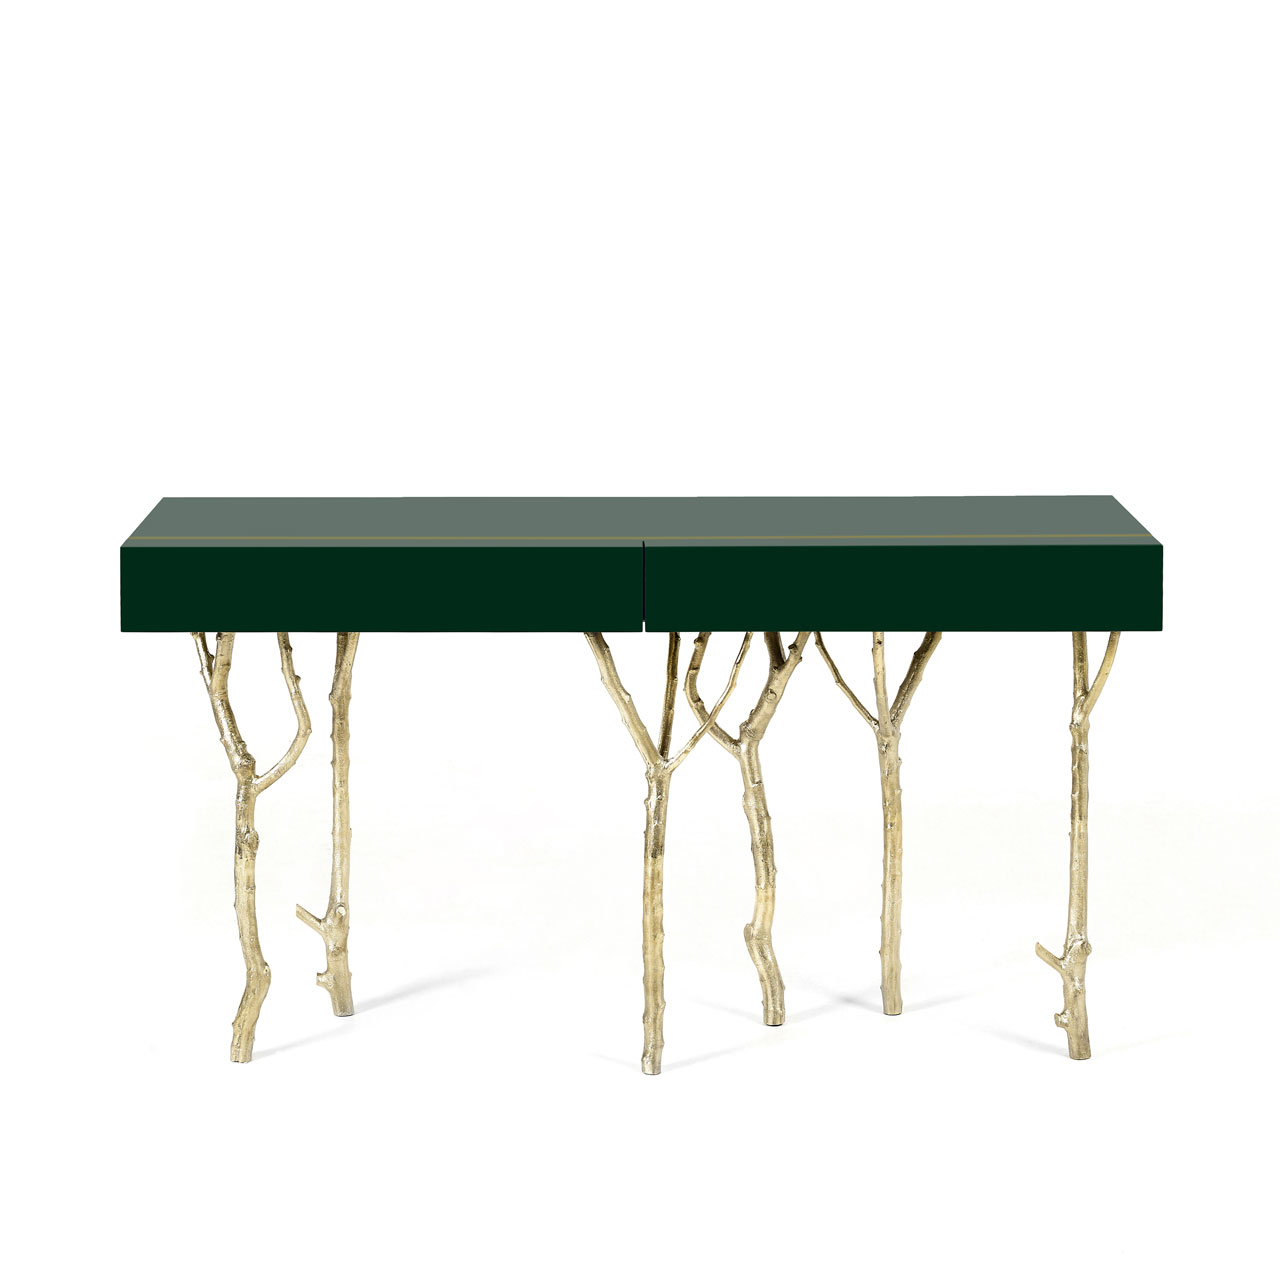 The Fig Tree Console is a tribute to Nature's graciousness. The legs are made from fig tree branches in brass casting mold. The lacquered top has two drawers with purpleheart wood veneer lined with a subtle metal rim. Photo© Ginger & Jagger.